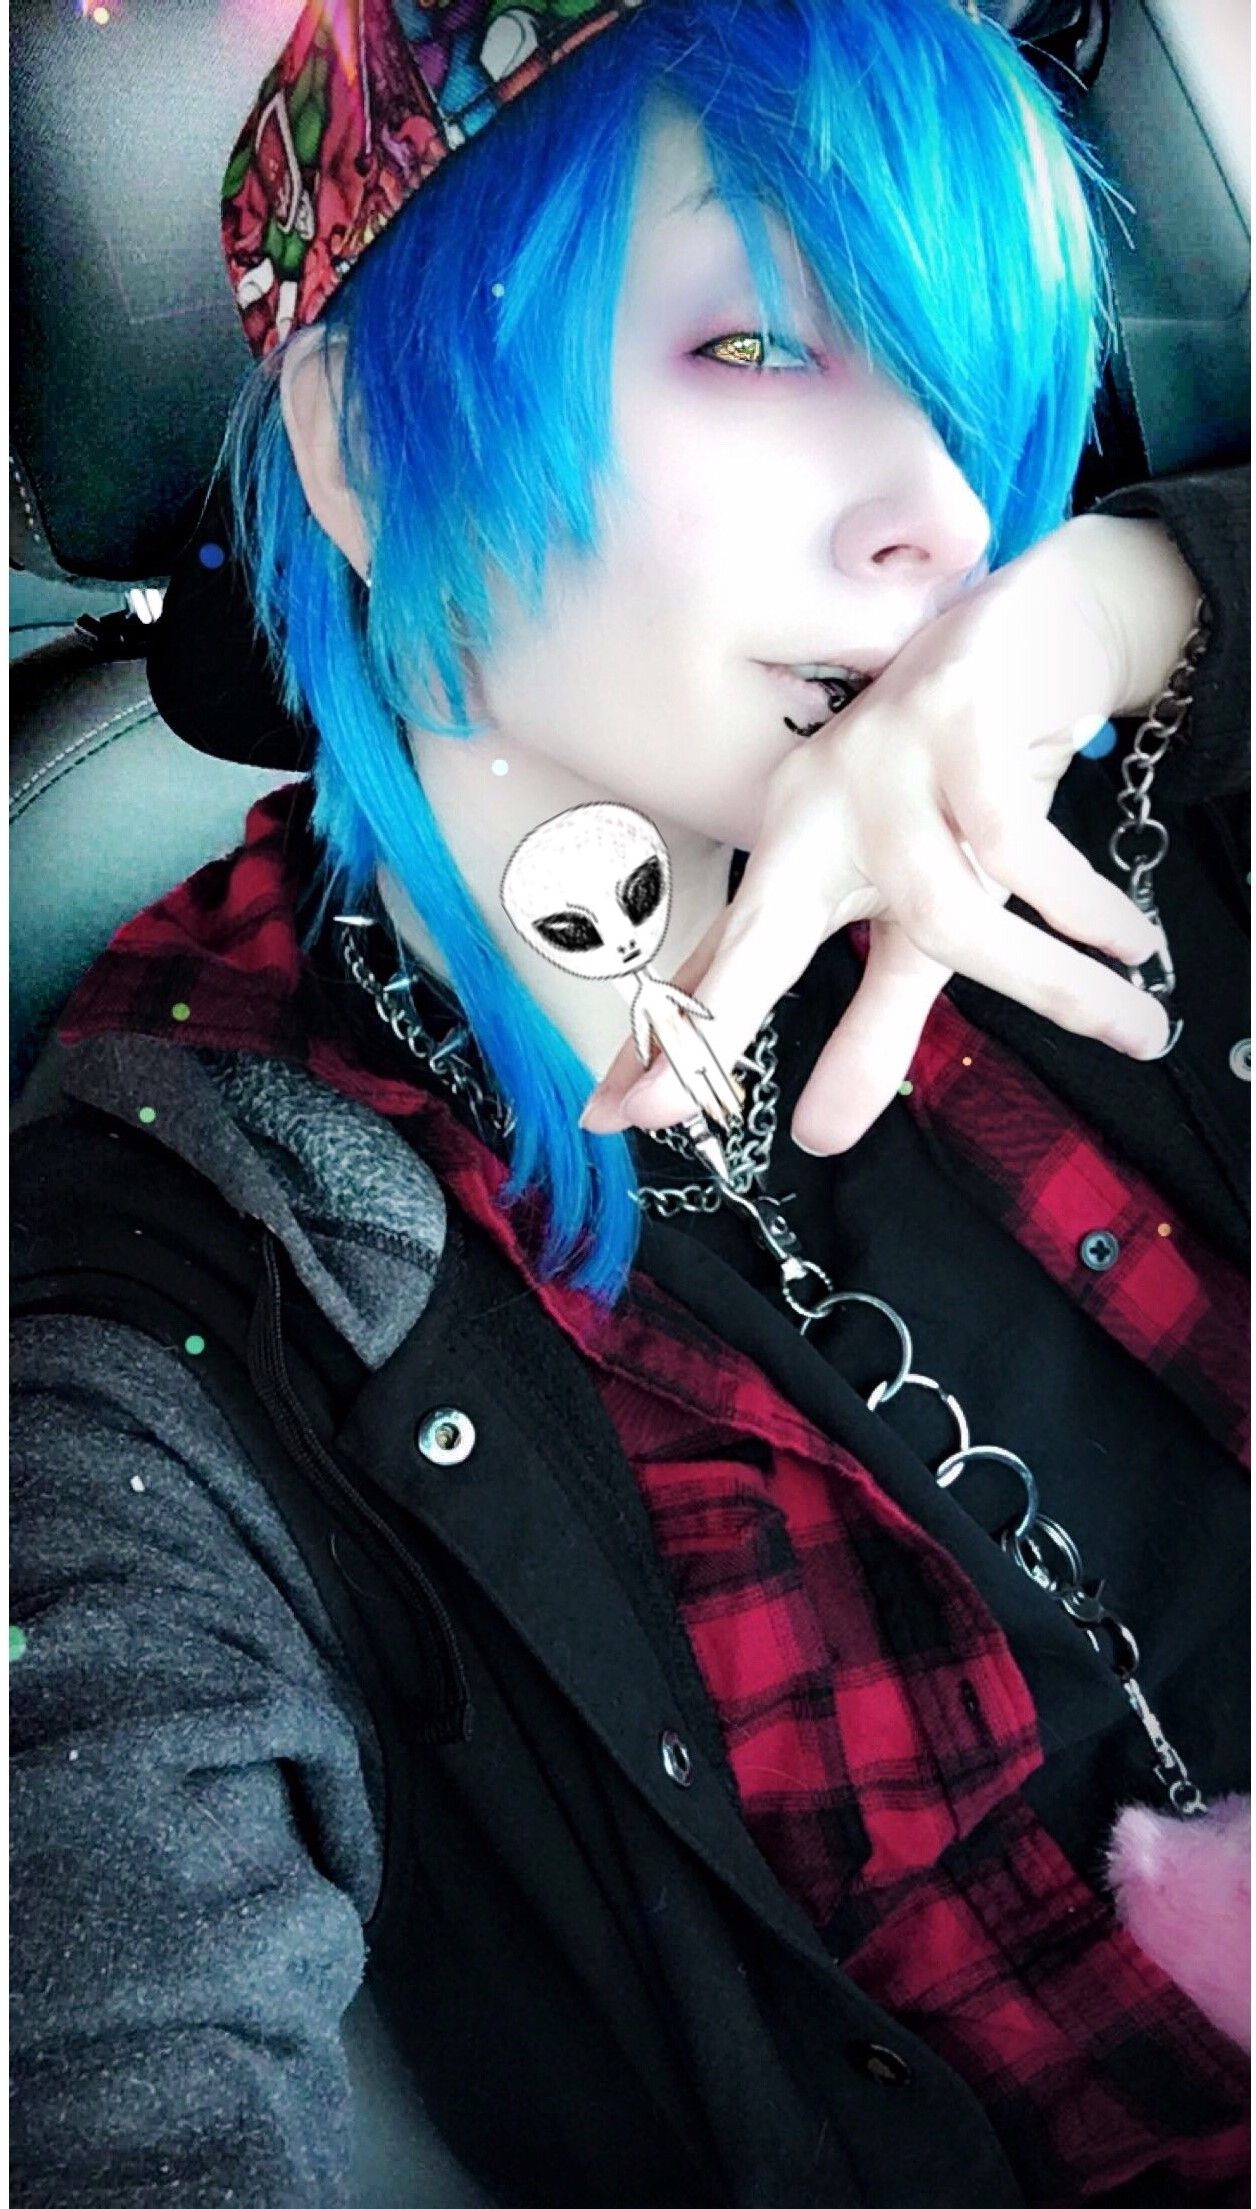 Pin by Cambria Carter on dmmd | Cute emo guys, Cute emo